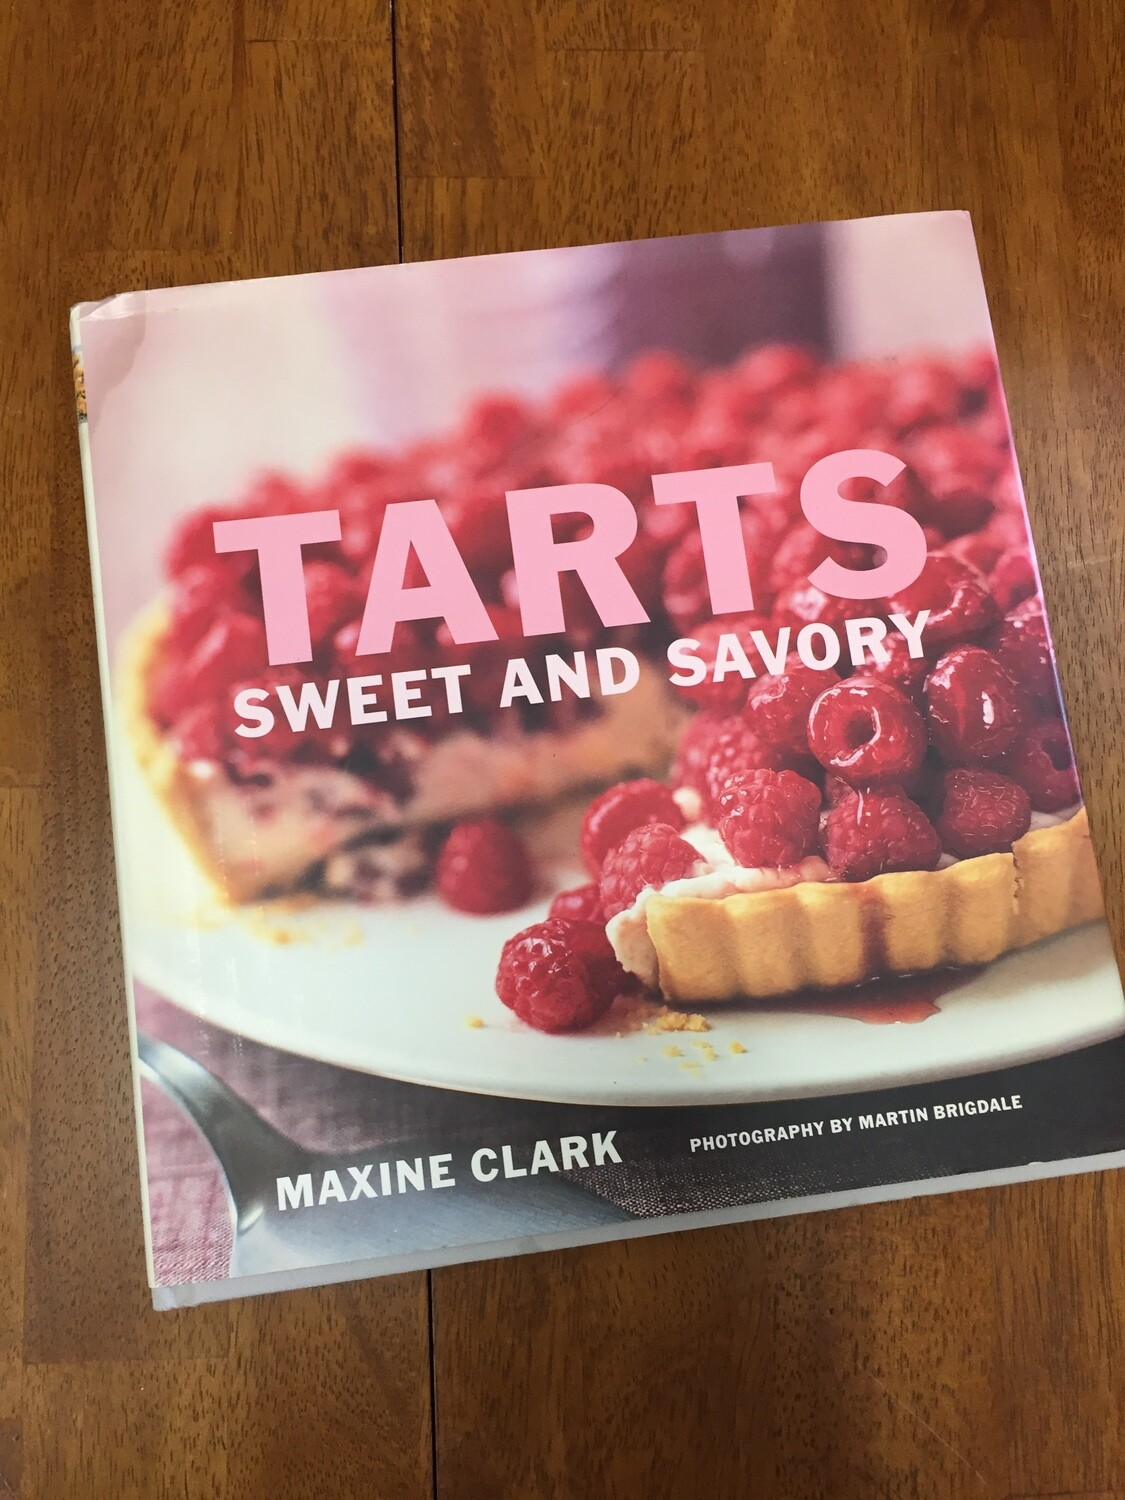 Tarts - Sweet and Savory